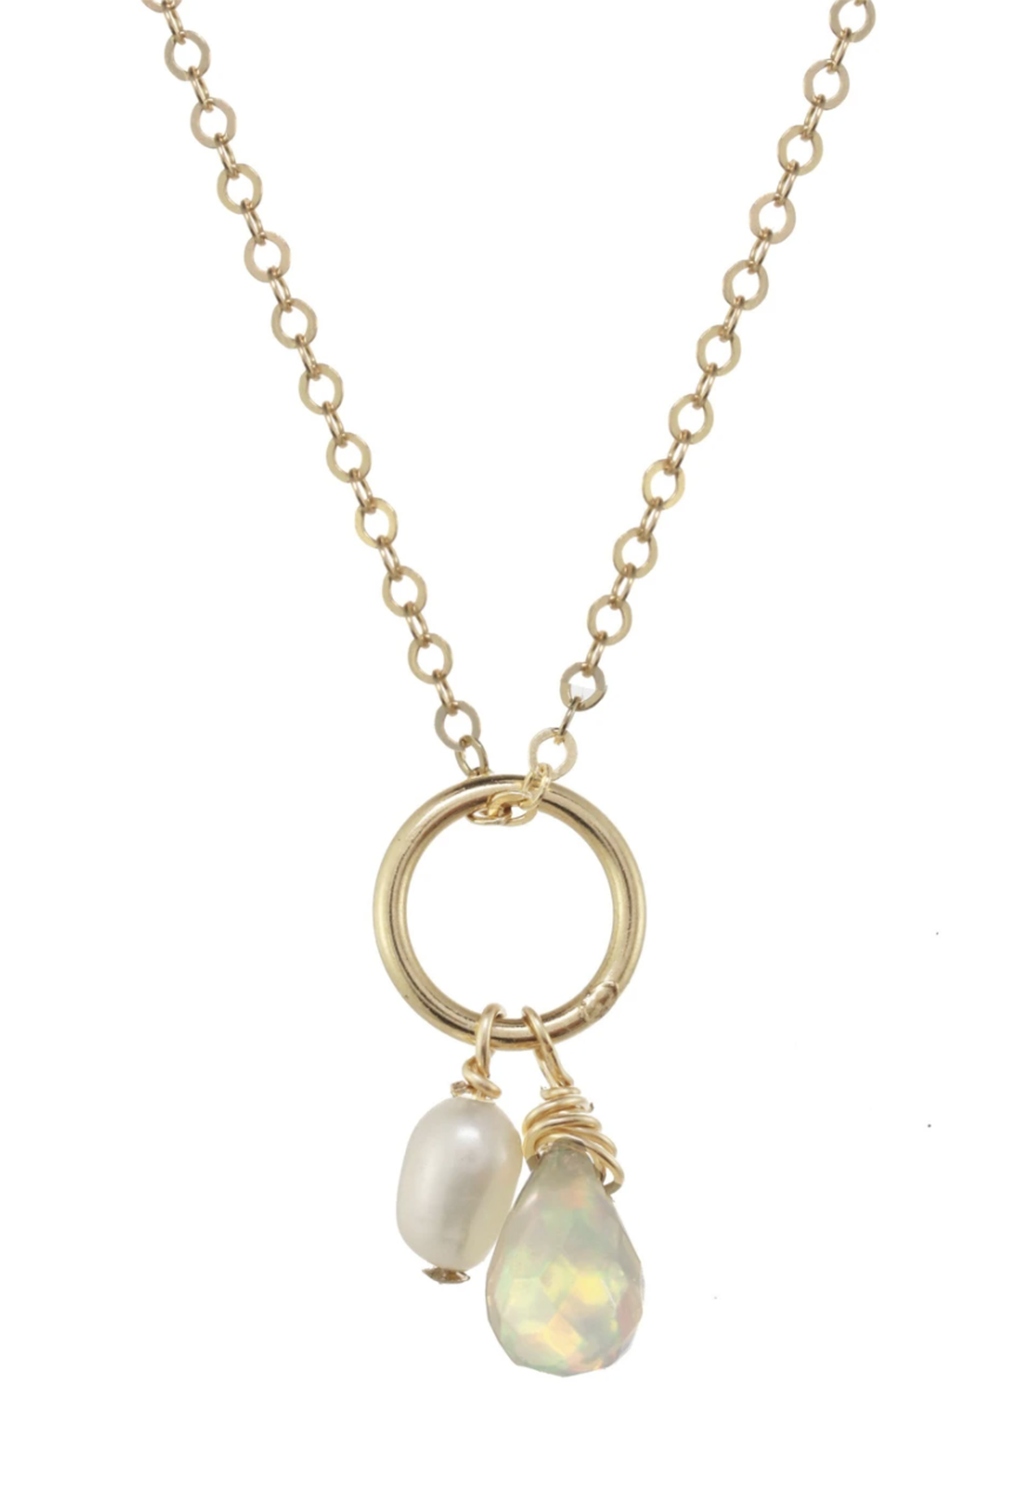 Michelle Opal/Pearl Necklace